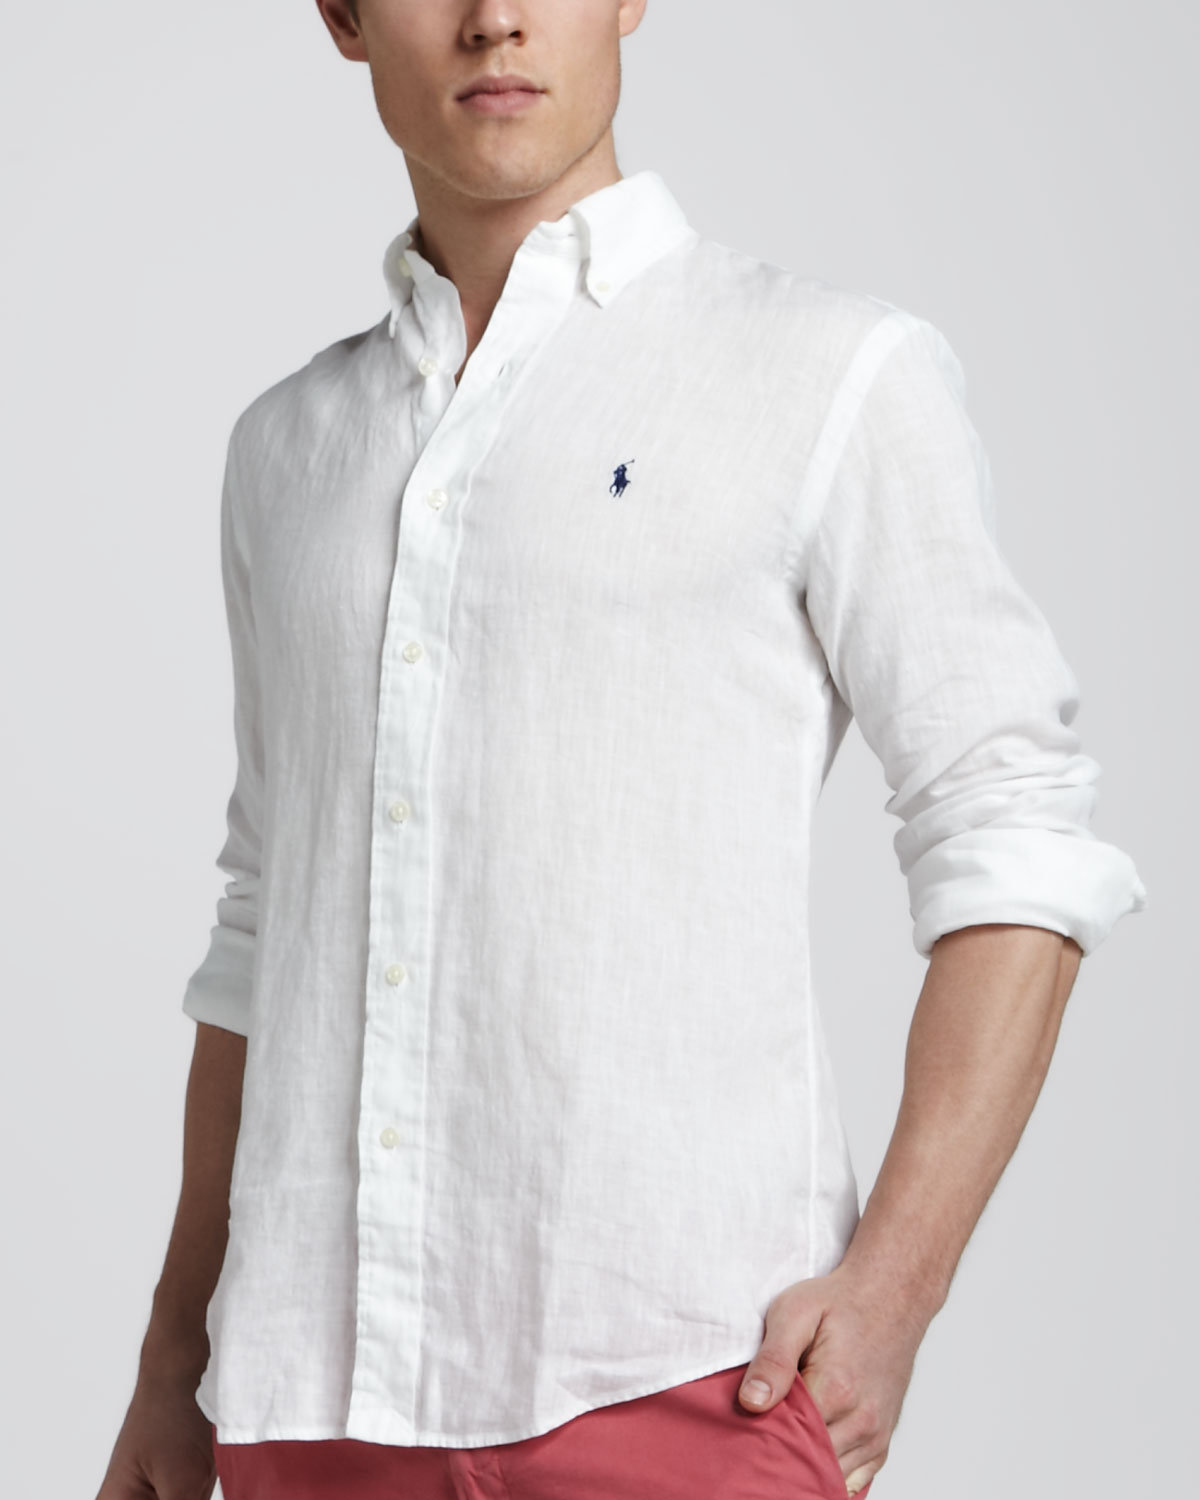 ralph lauren polo shirts on sale for men ralph lauren